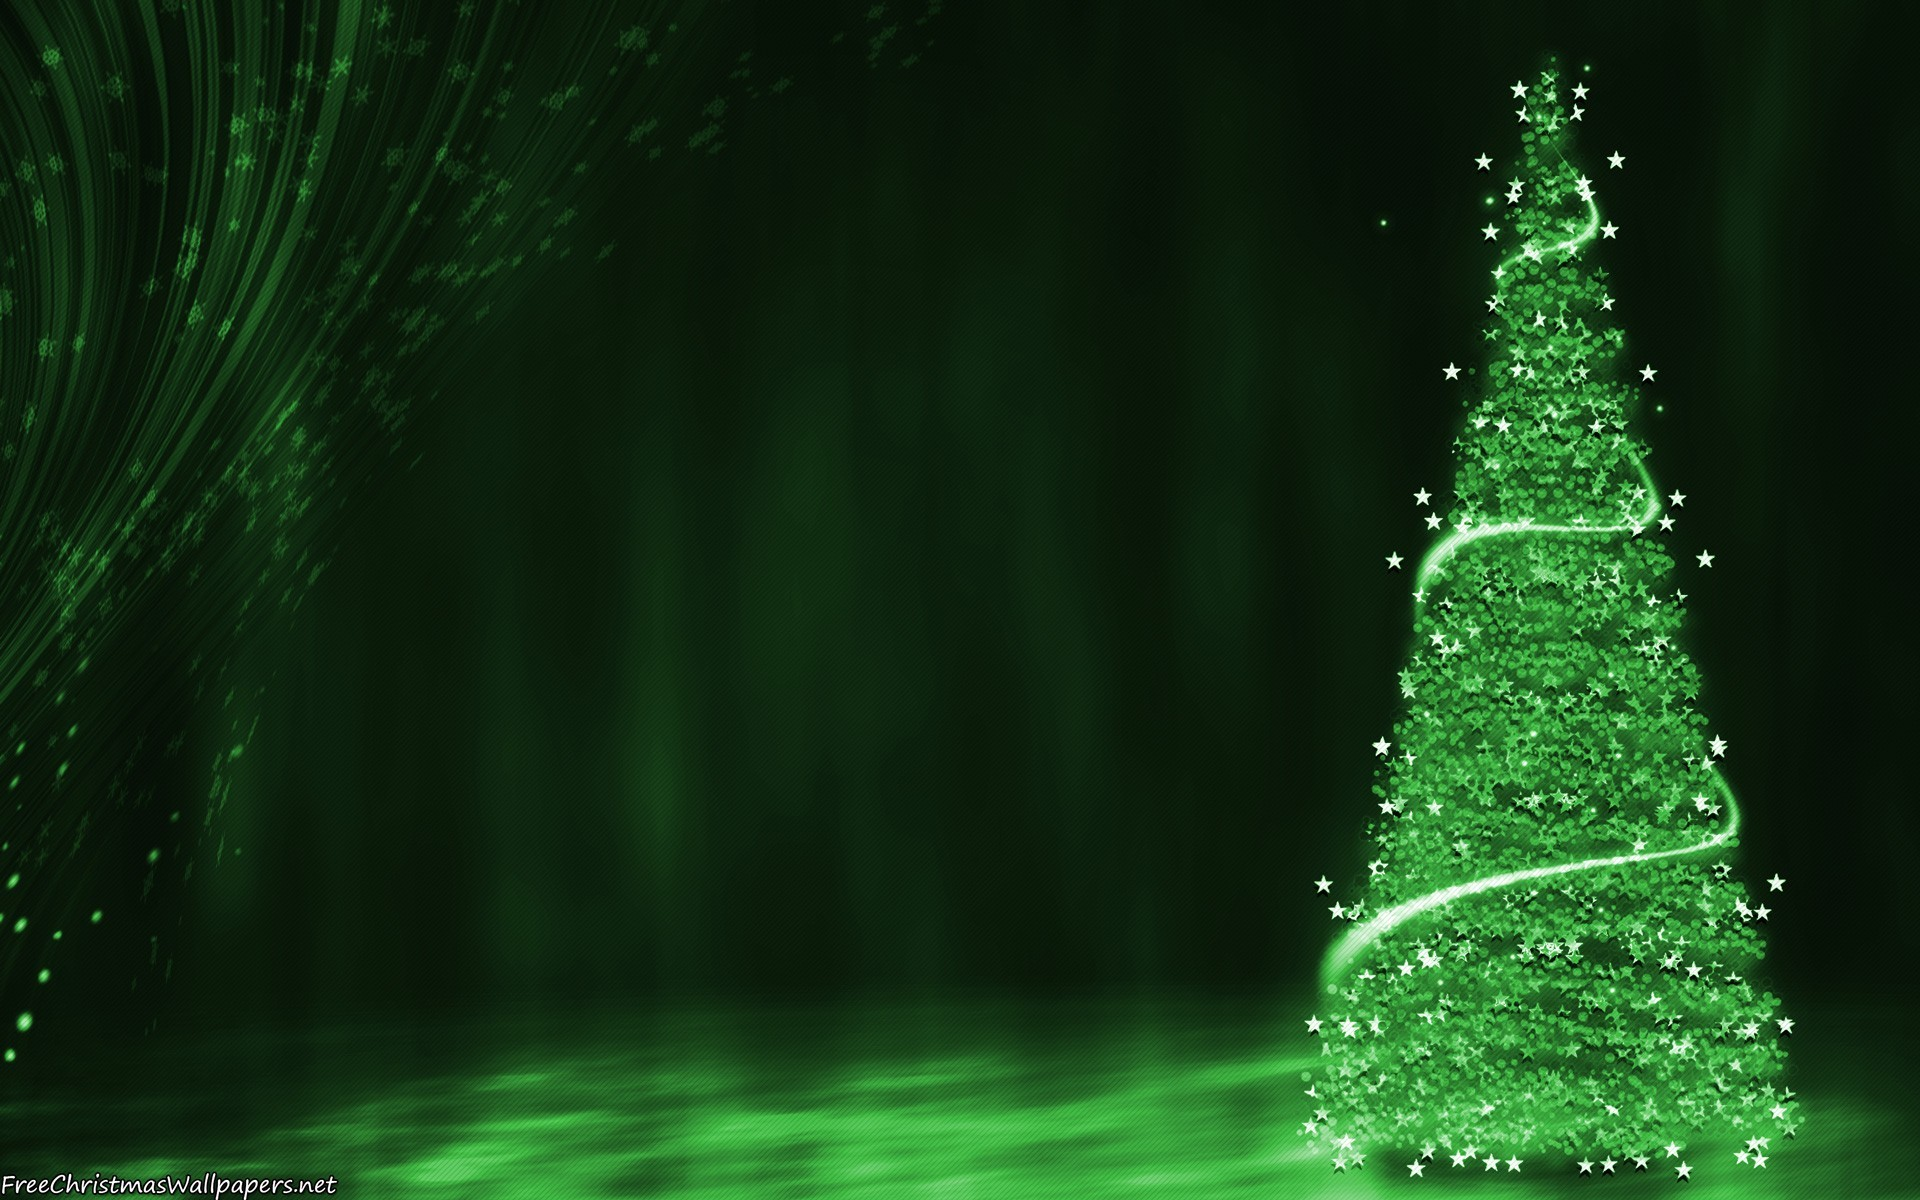 1920x1200 Green Christmas Tree Background Wallpaper Download